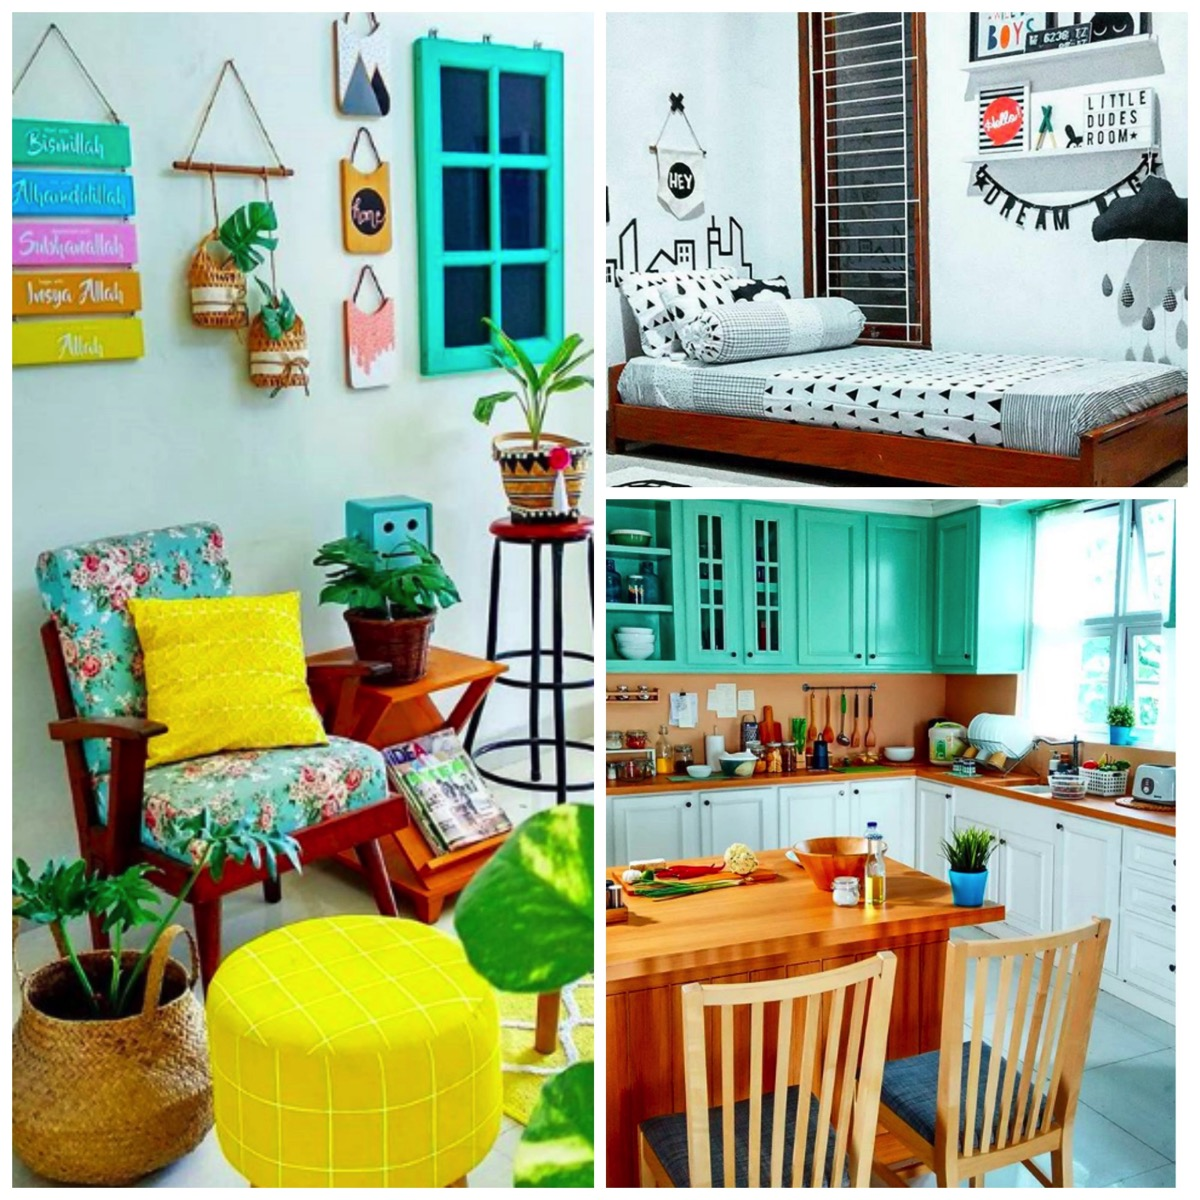 Colorful bright home decor ideas